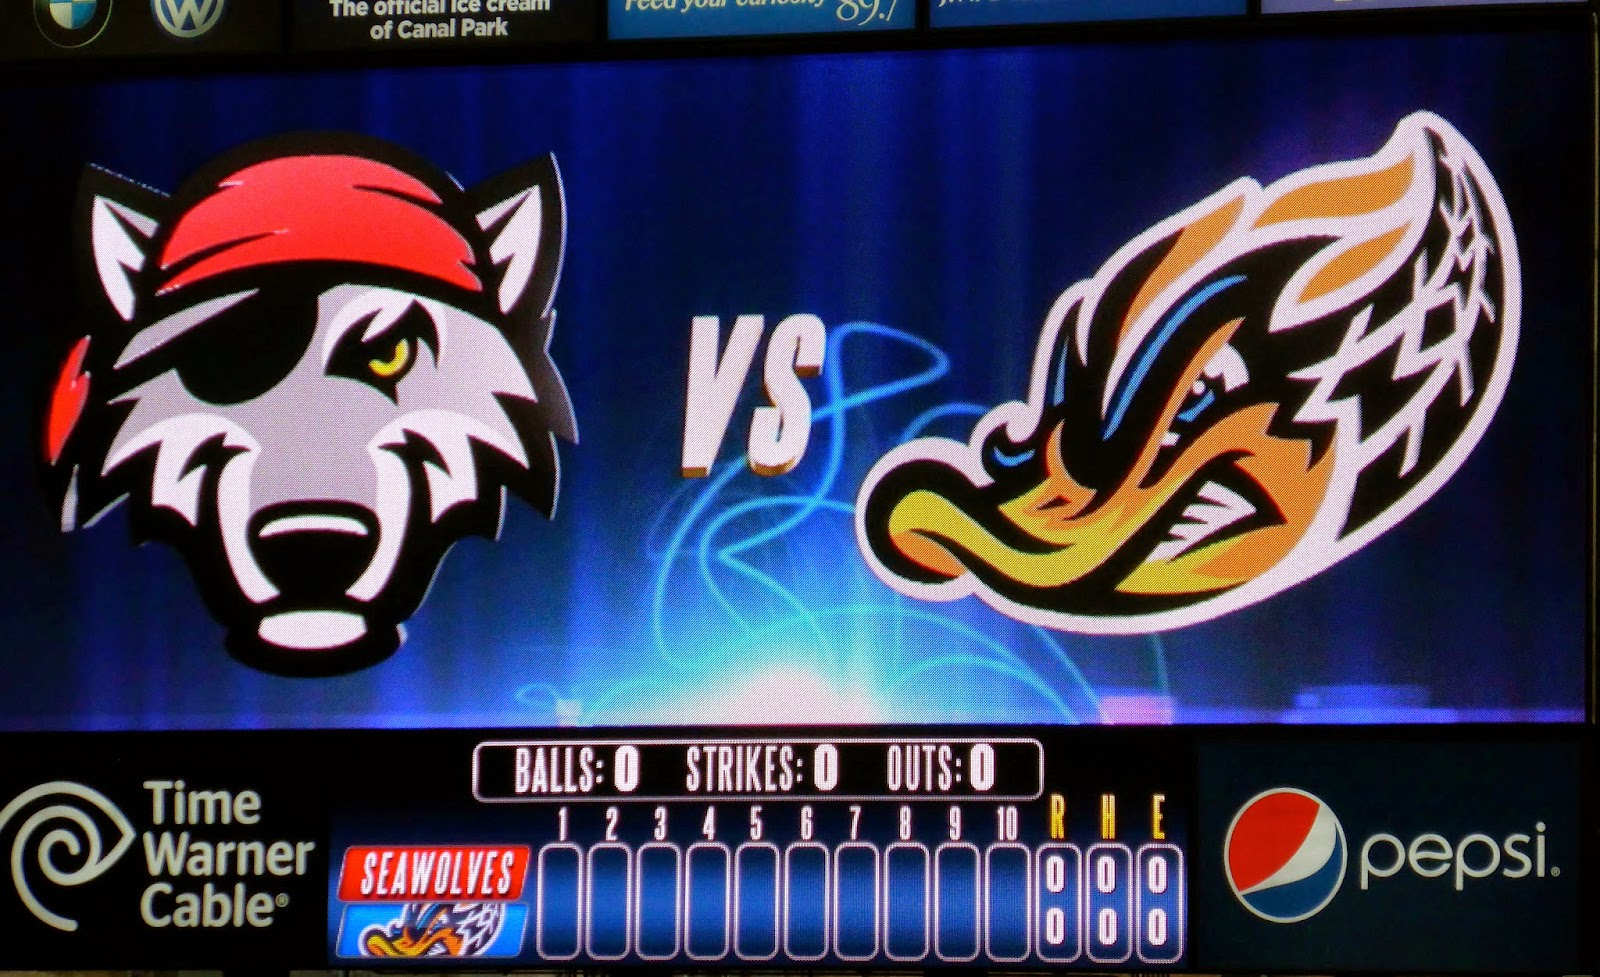 Sports Road Trips: Erie SeaWolves 1 at Akron RubberDucks 7